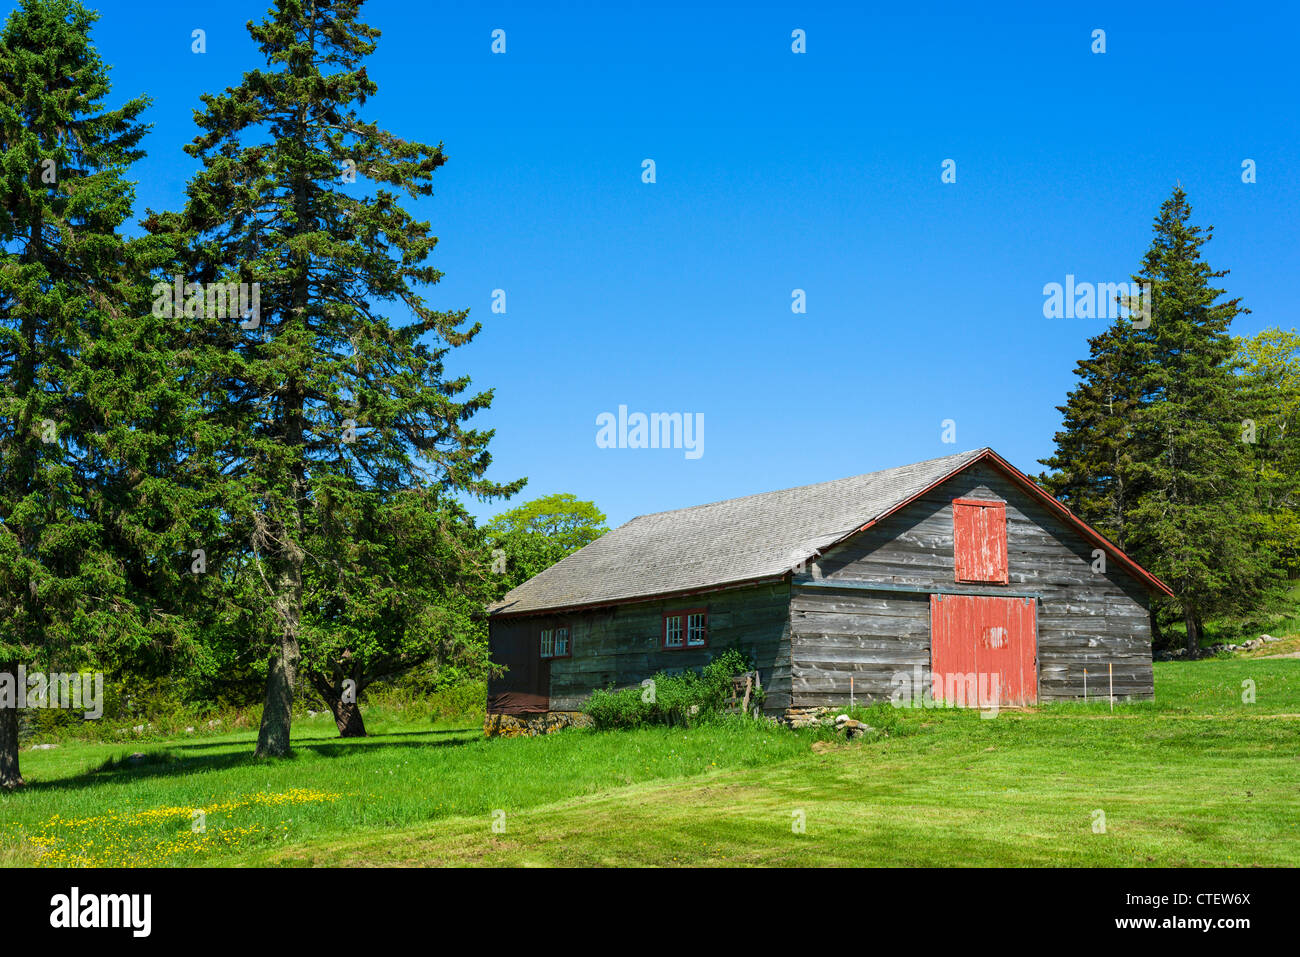 Traditional barn near Owls Head on St George Peninsula, Knox County, Maine, USA - Stock Image